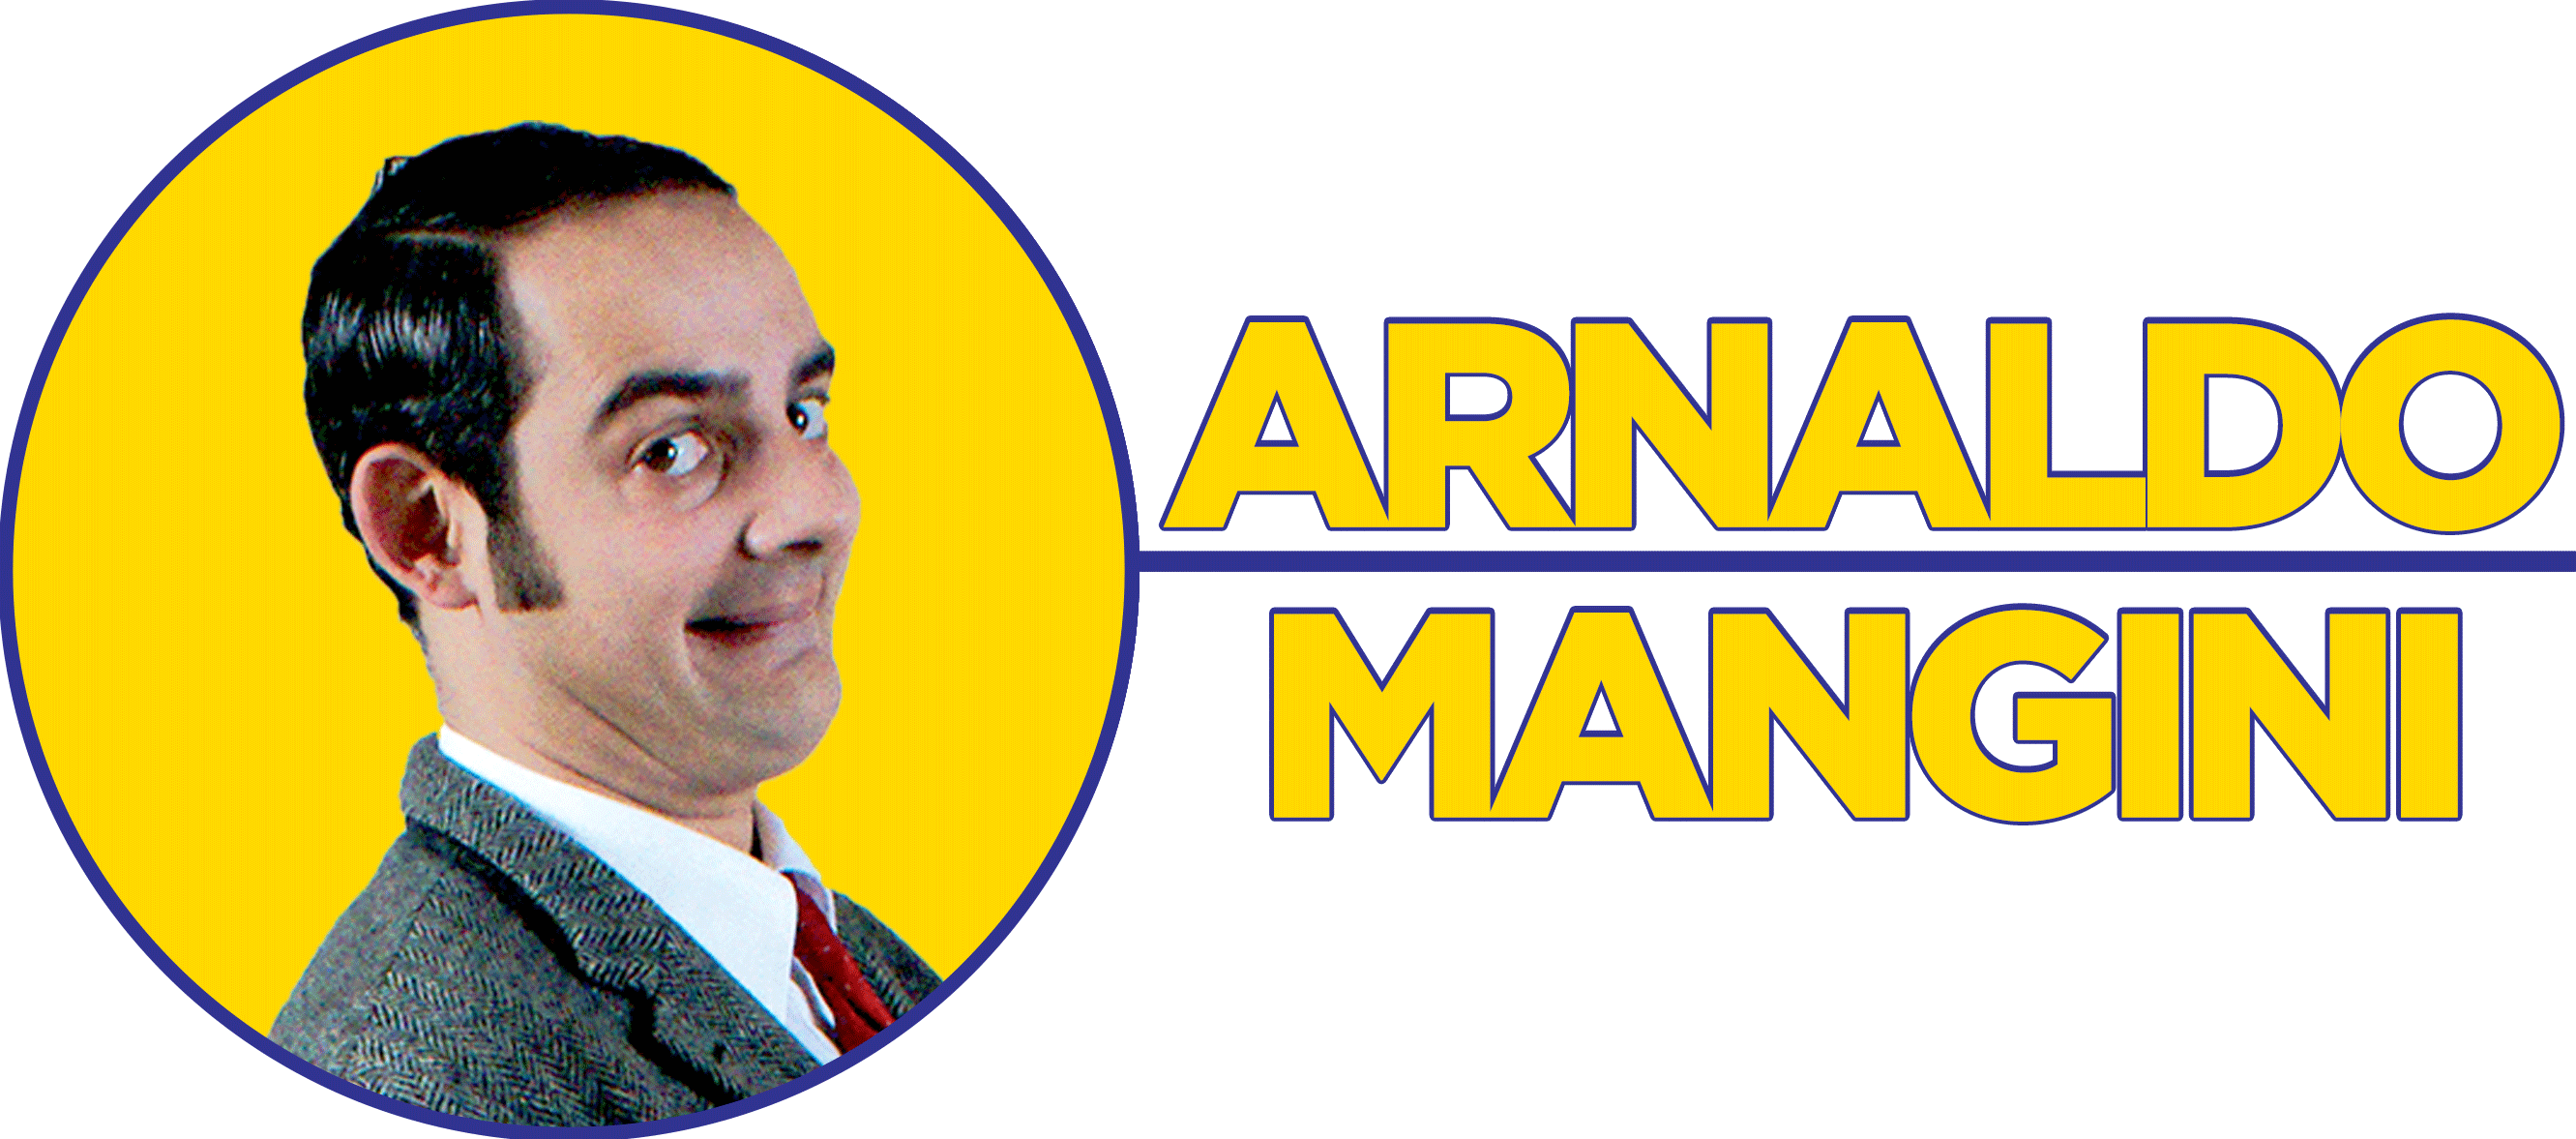 Marzo 2014 - Arnaldo Mangini Clown Actor / MrBean Lookalike